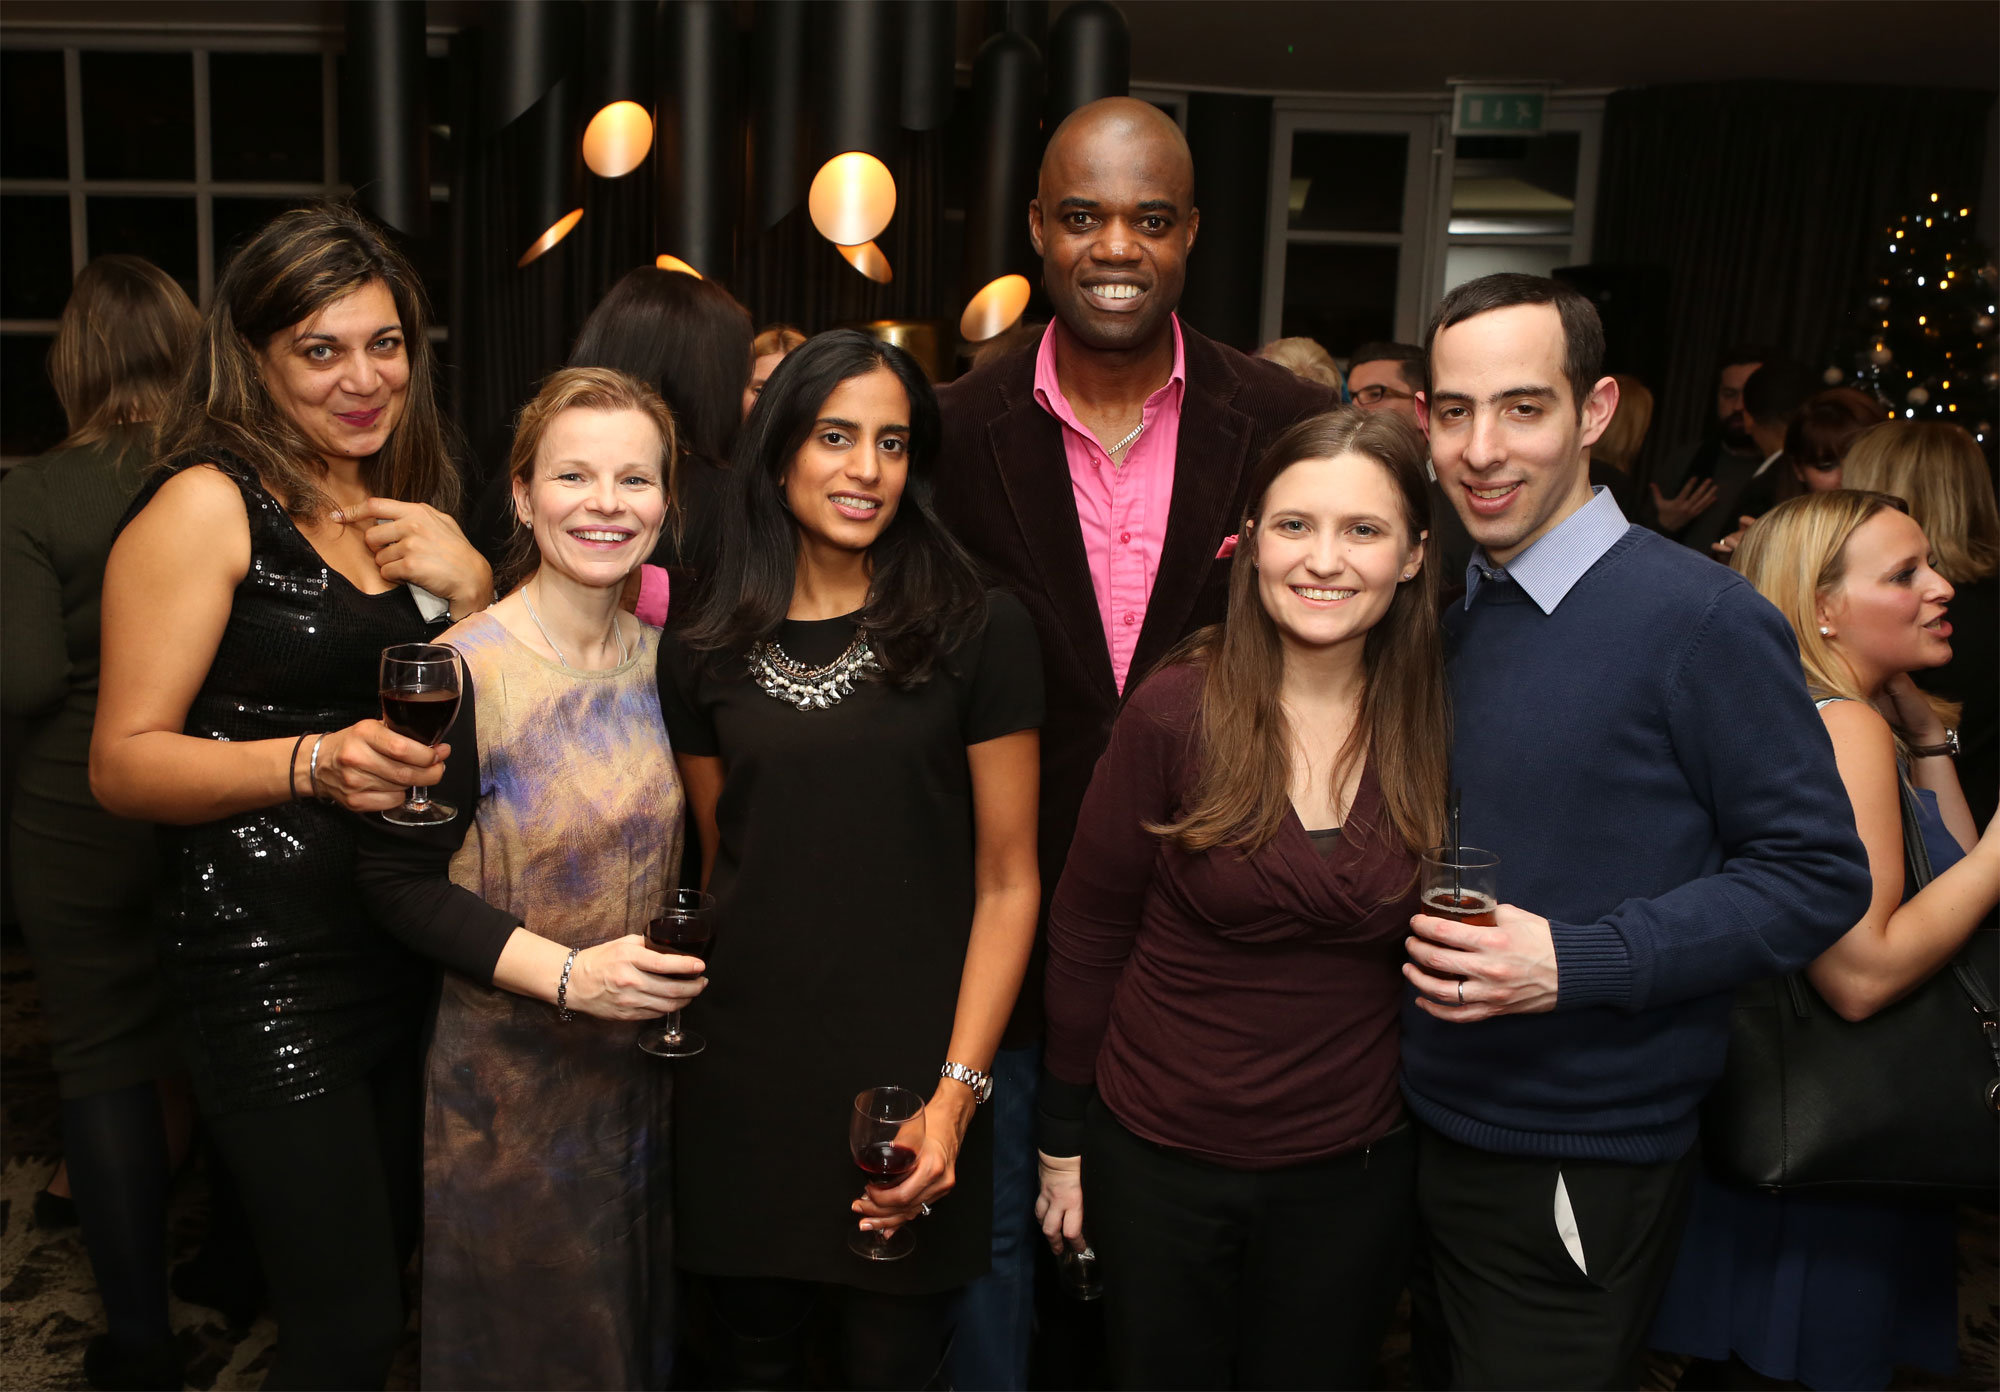 Members of the Luxurious Magazine London Editorial Team at the Brompton Fountain charity party